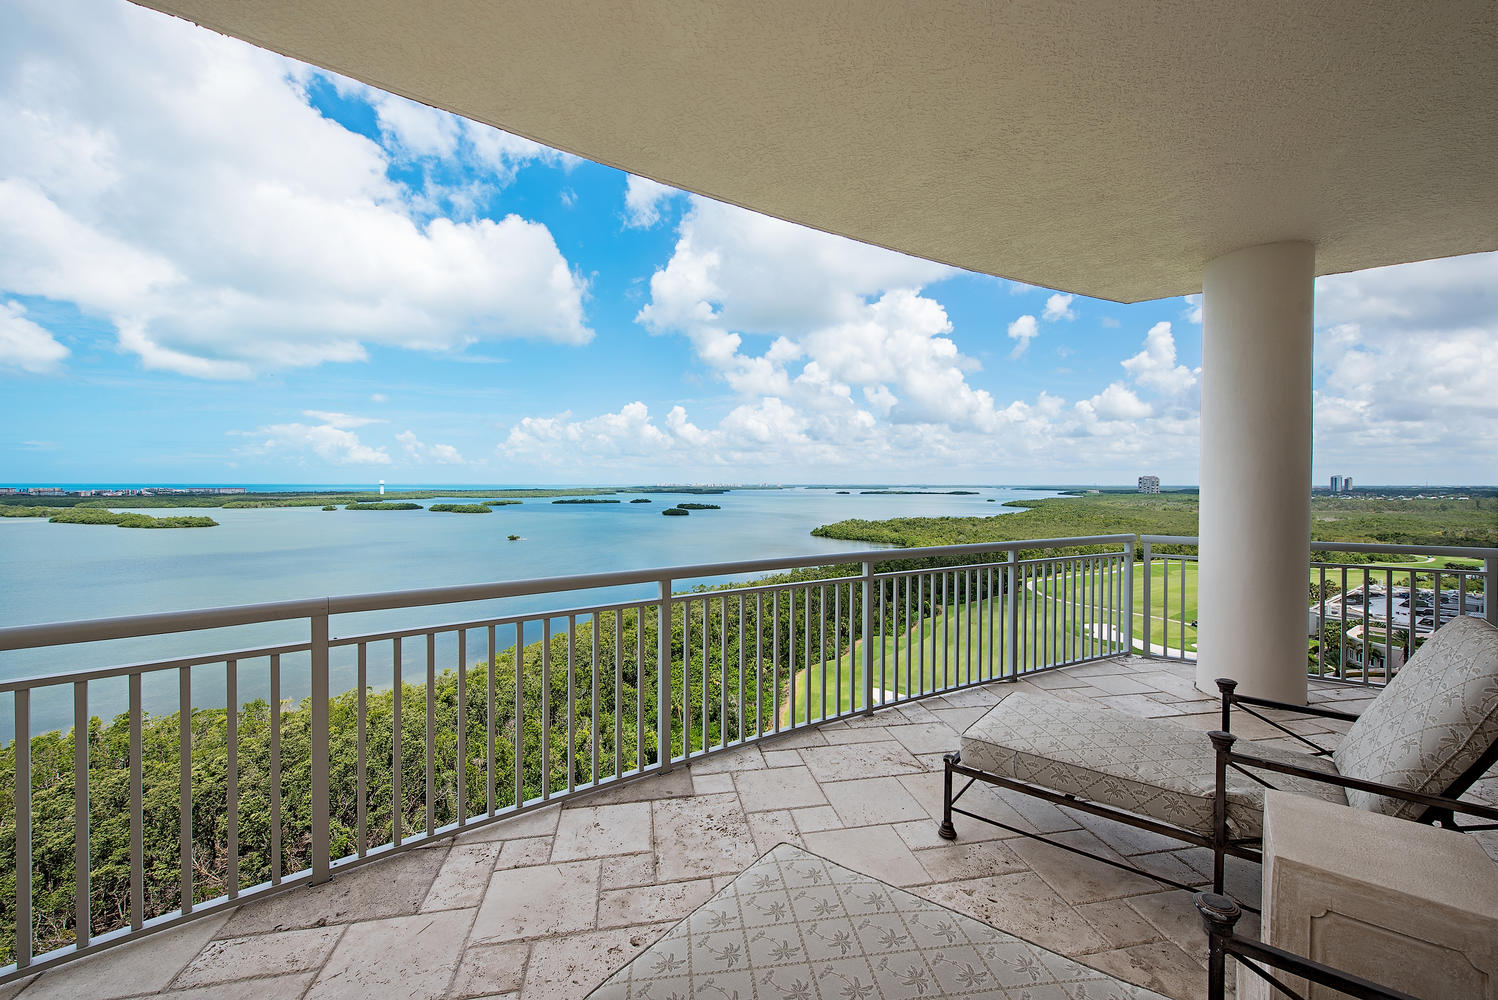 4931 Bonita Bay Blvd #1403 Master Bedroom Balcony View